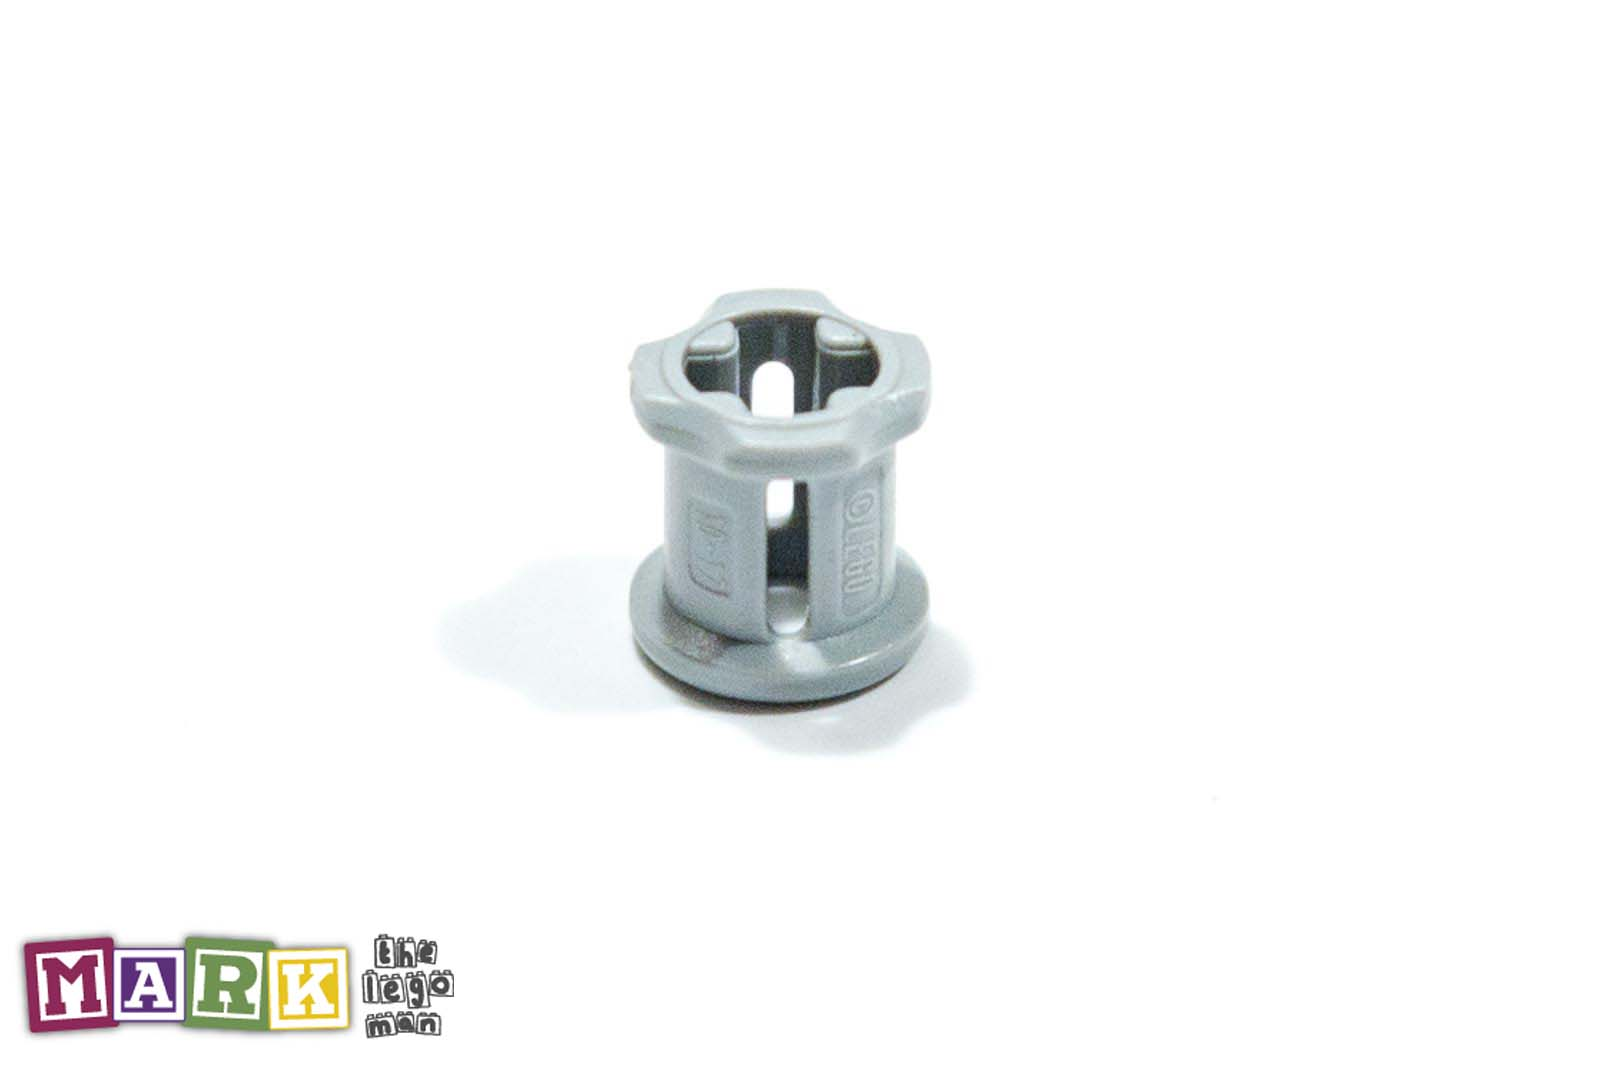 Lego 4211622 6590 1x Light Blueish Grey Md Stone Medium Standard Grey Bush For Cross Axle